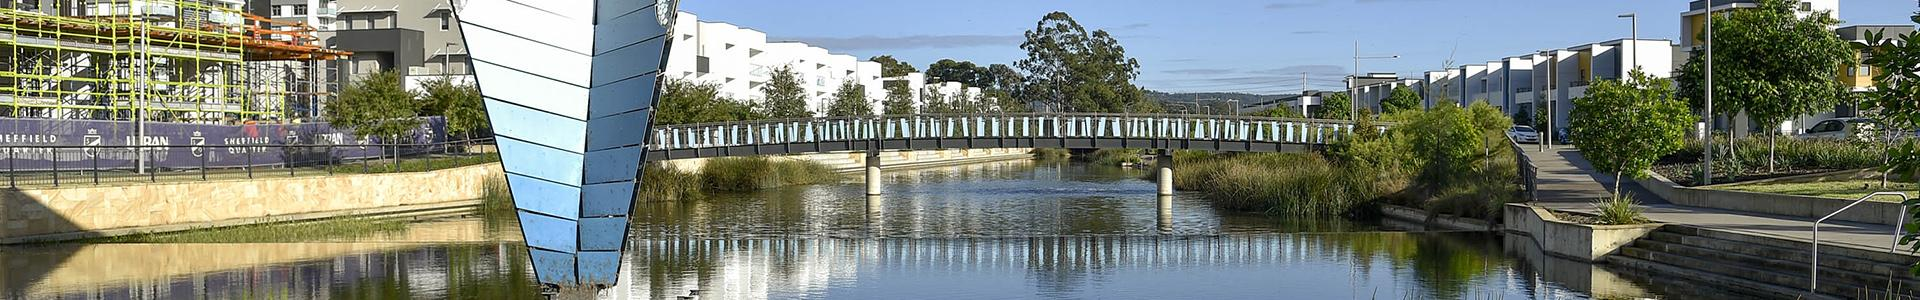 Lake and bridge in Thornton, Penrith